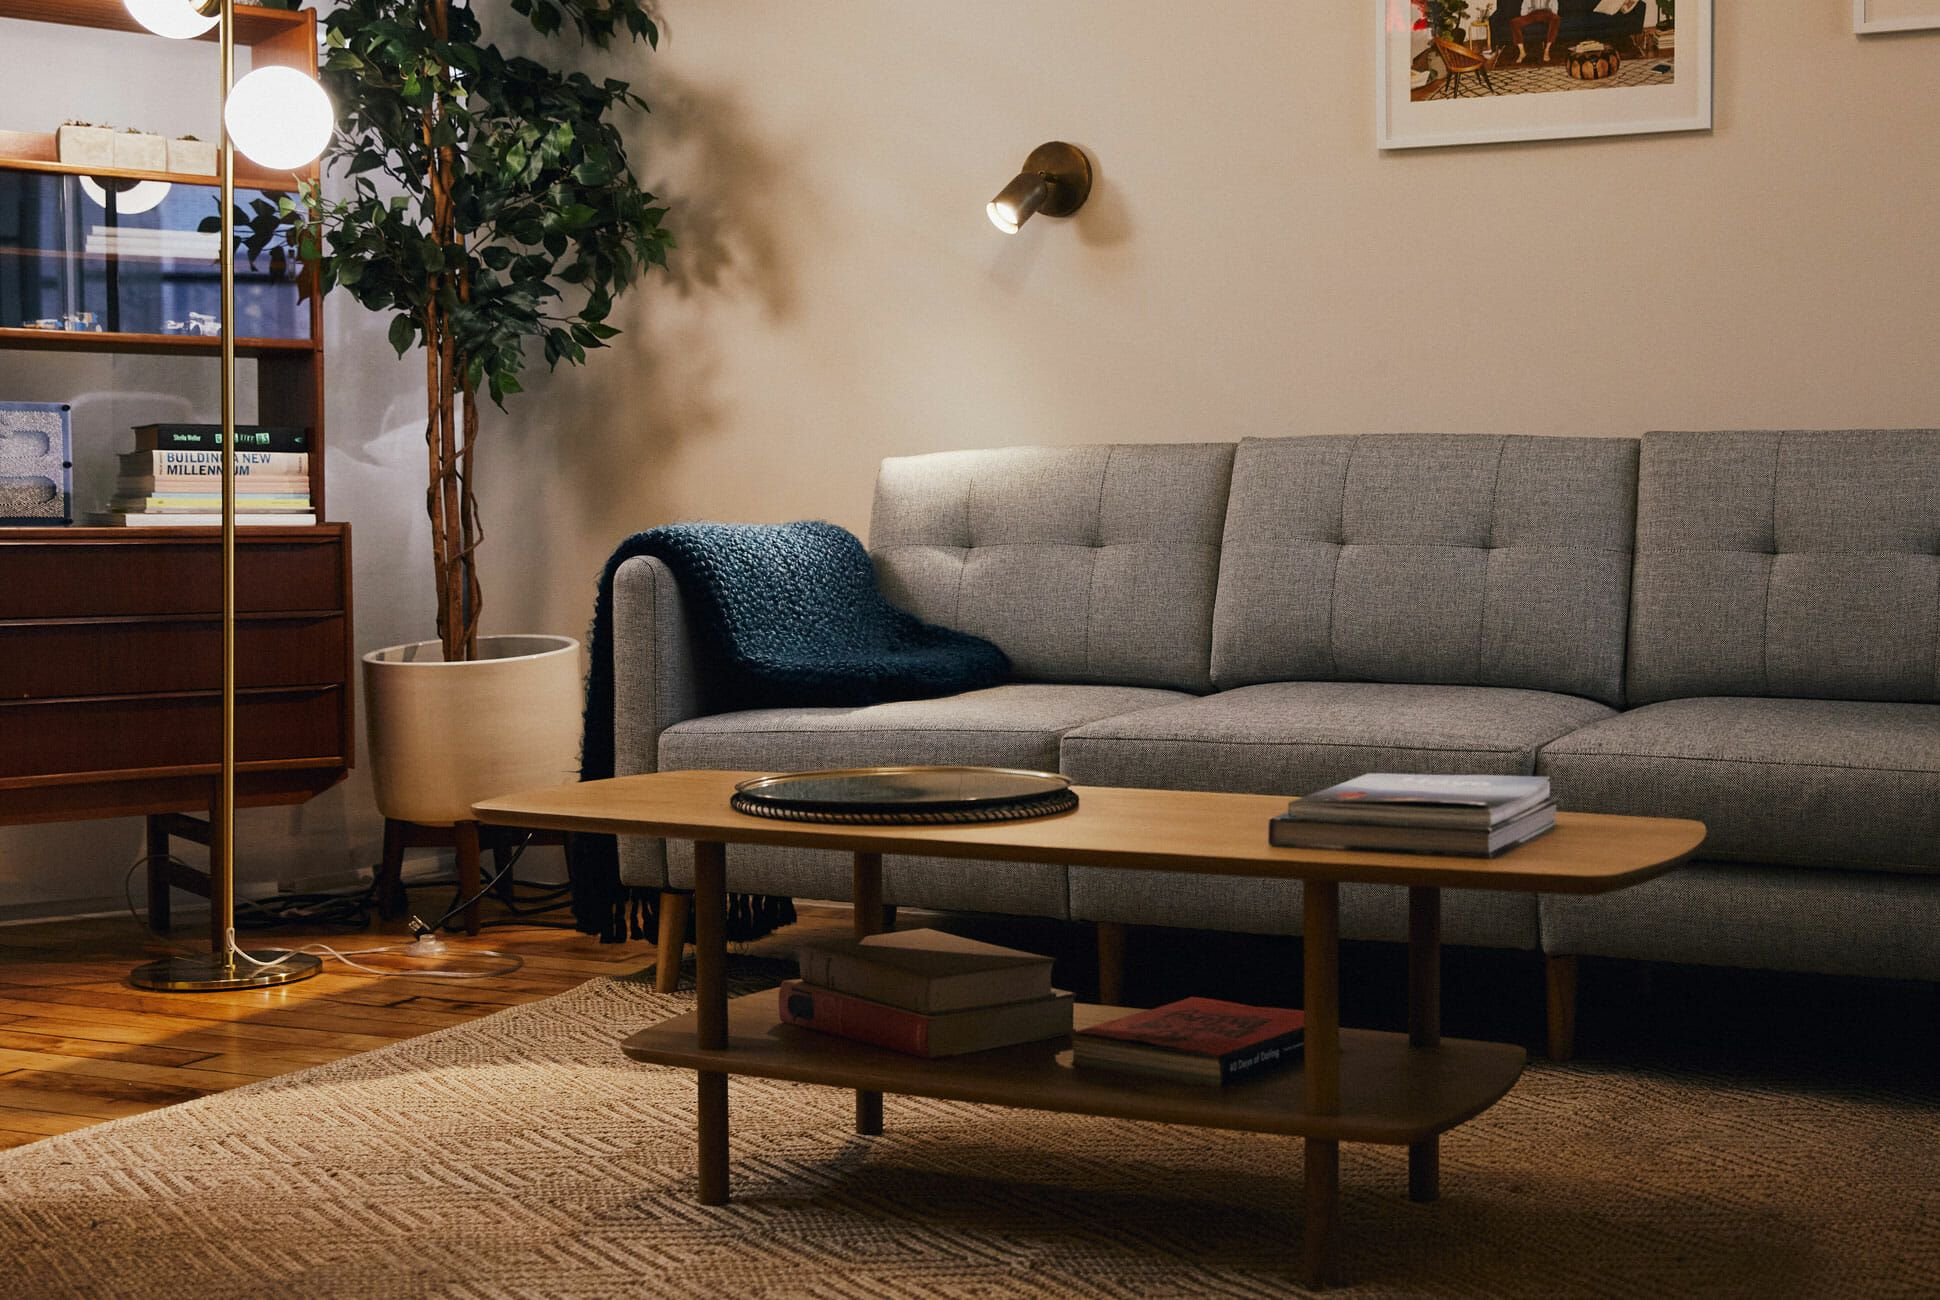 The 35 Best Sofas And Couches You Can Buy In 2020 Gear Patrol In 2020 Sofa Design Best Sofa Selling Furniture